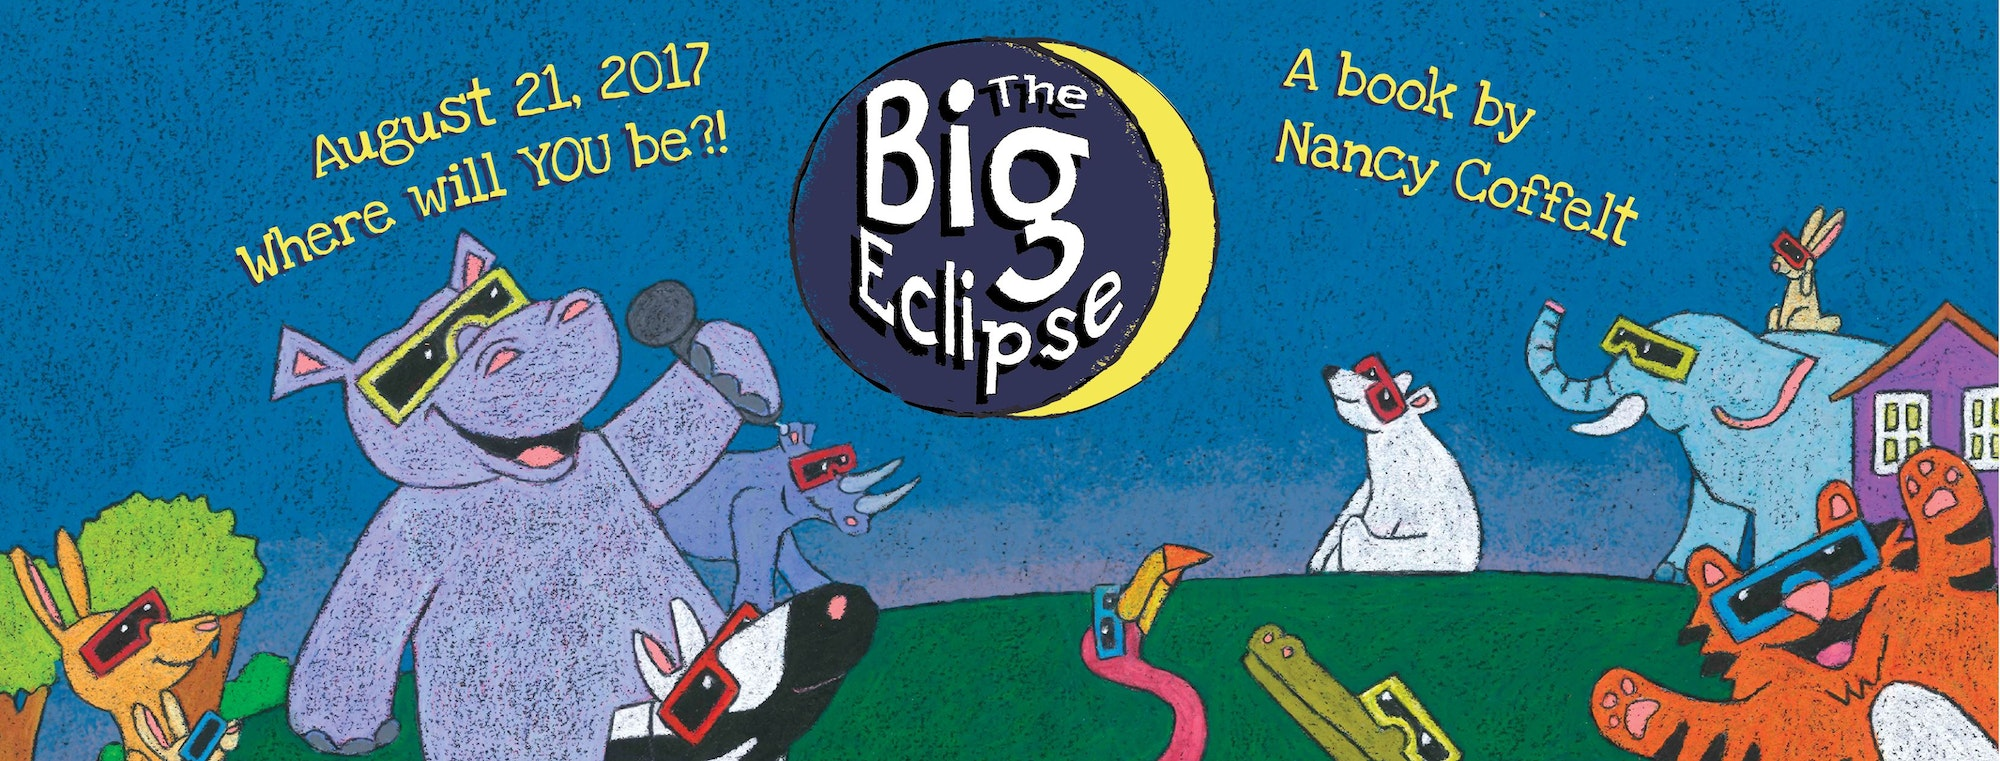 Picture with text. animals wearing sunglasses. text reads The big eclipse August 21, 2017 where will you be? A book by Nancy Cofelt